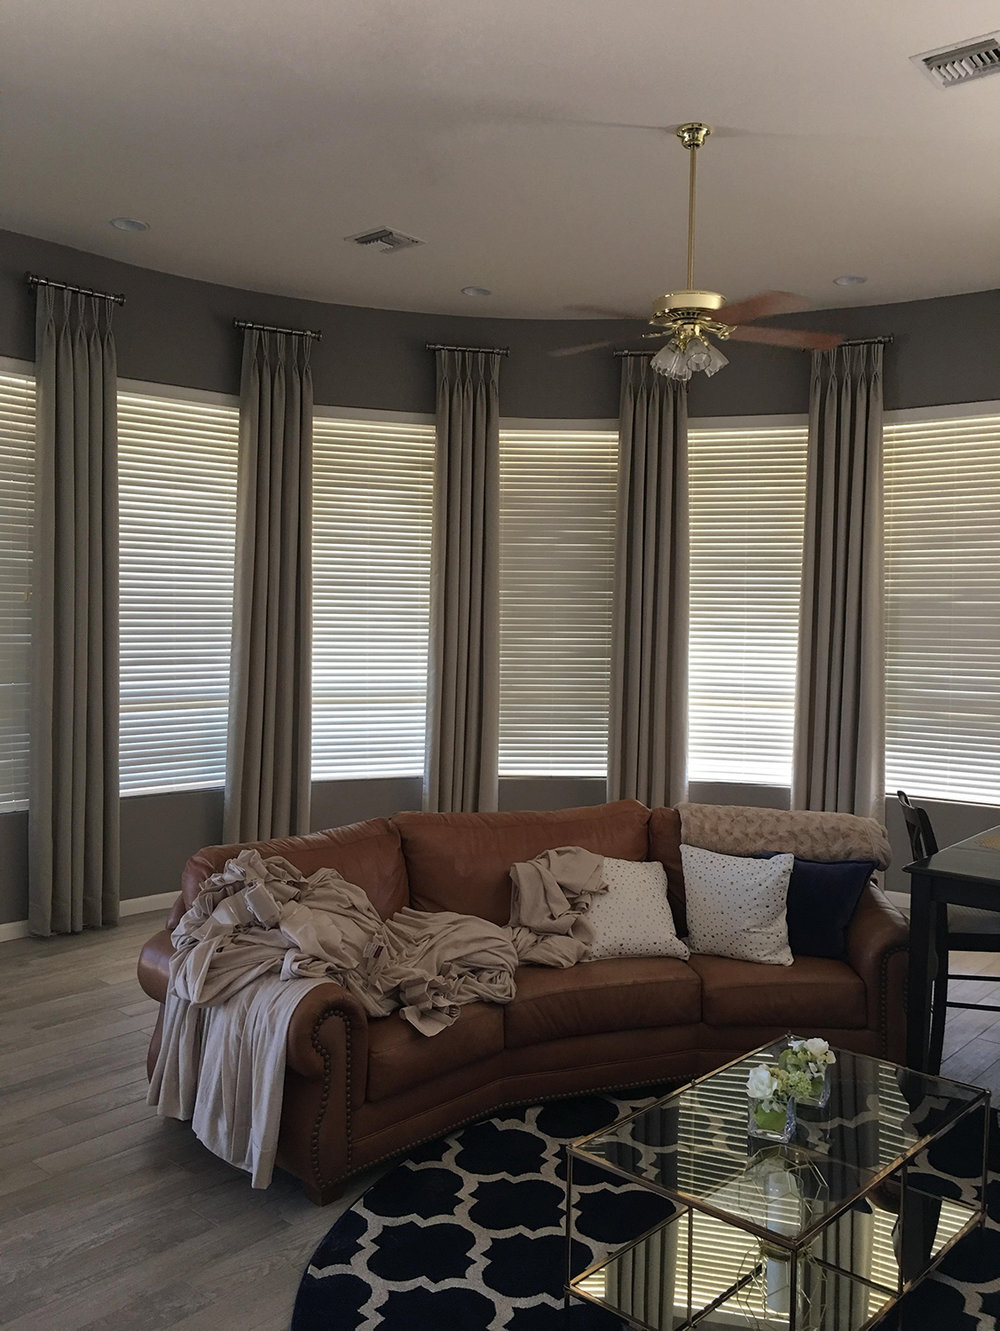 An example of blinds and draperies in a curved room.